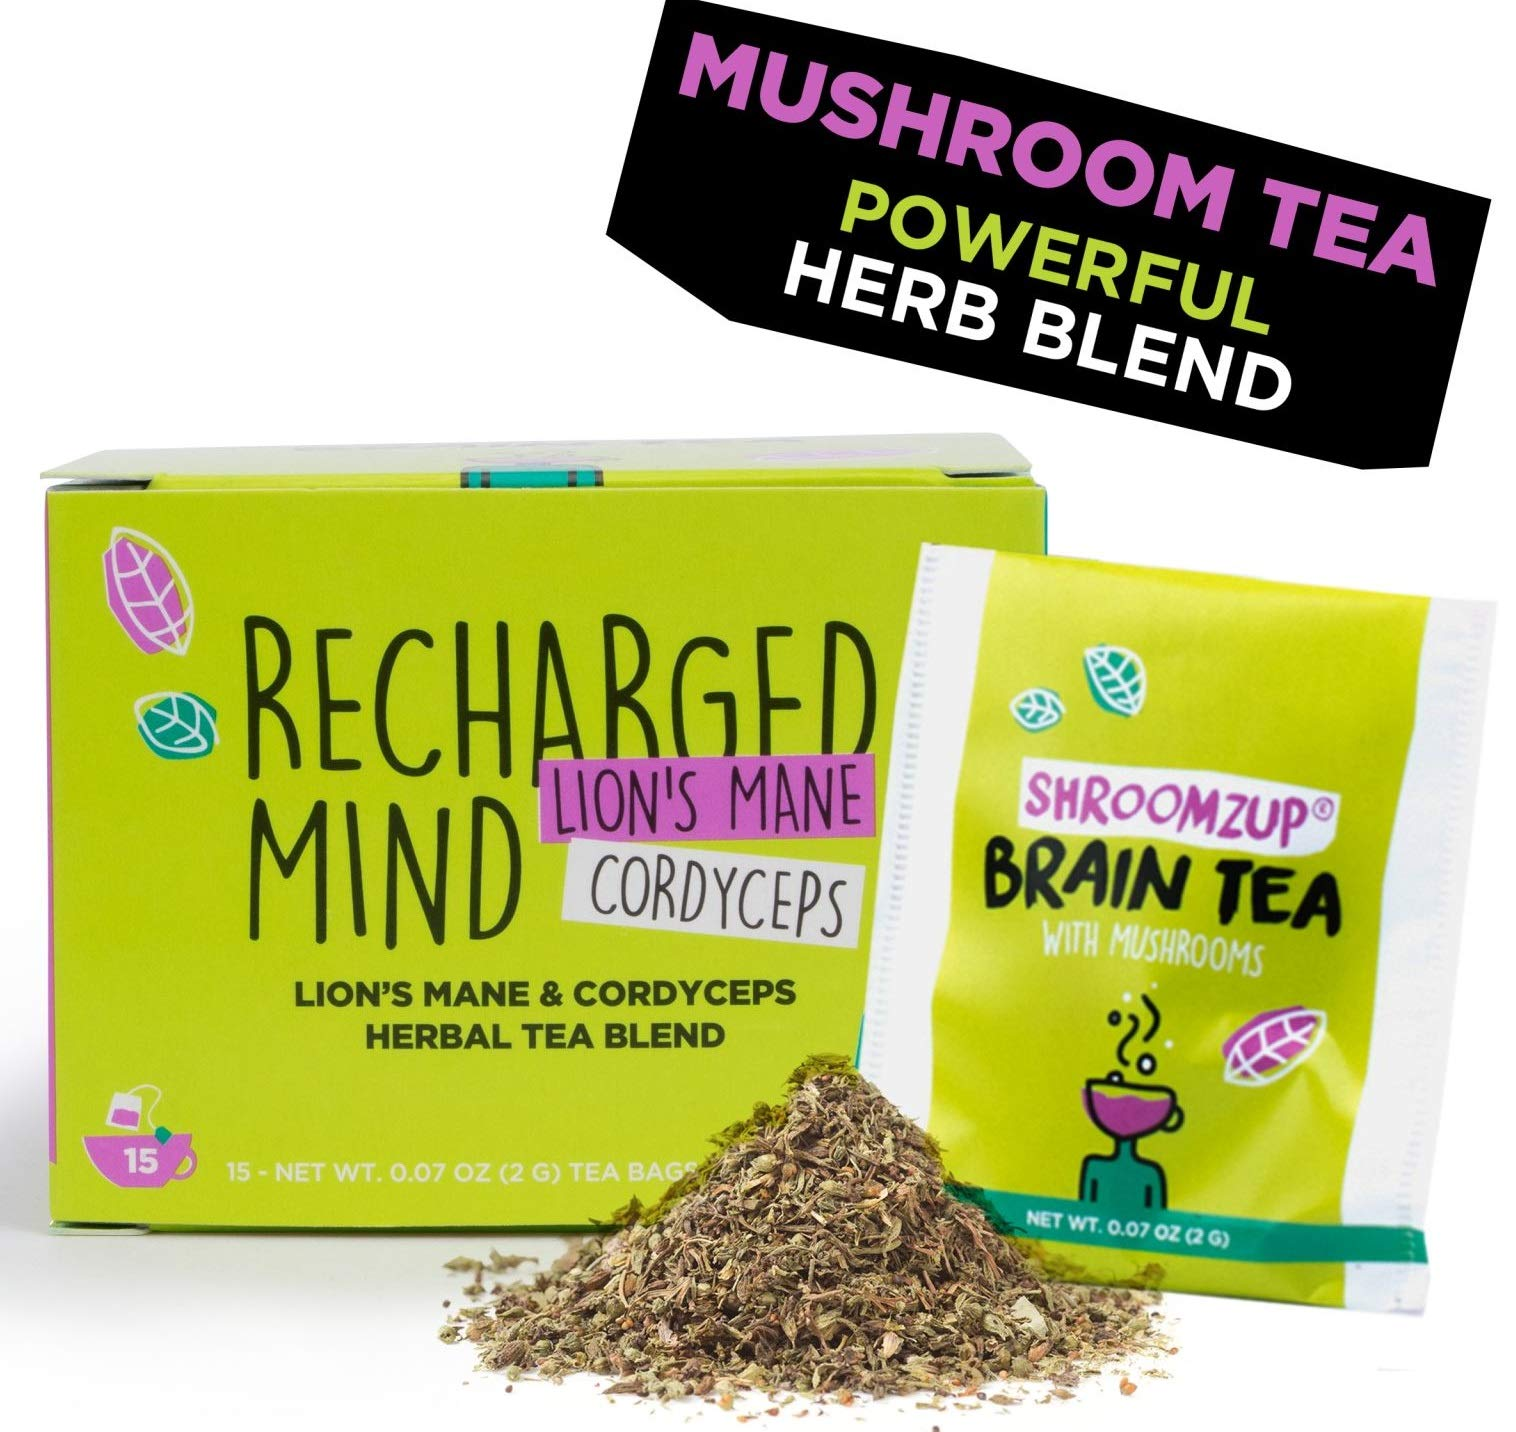 Mushroom Brain Tea with Lions Mane and Cordyceps Mix for Weight Loss Brain Memory 15 Bags Mental Focus Energy Booster Shroomzup Herbal Green Tea Vegan Gluten Free Organic Natural Ginkgo Biloba Ginseng